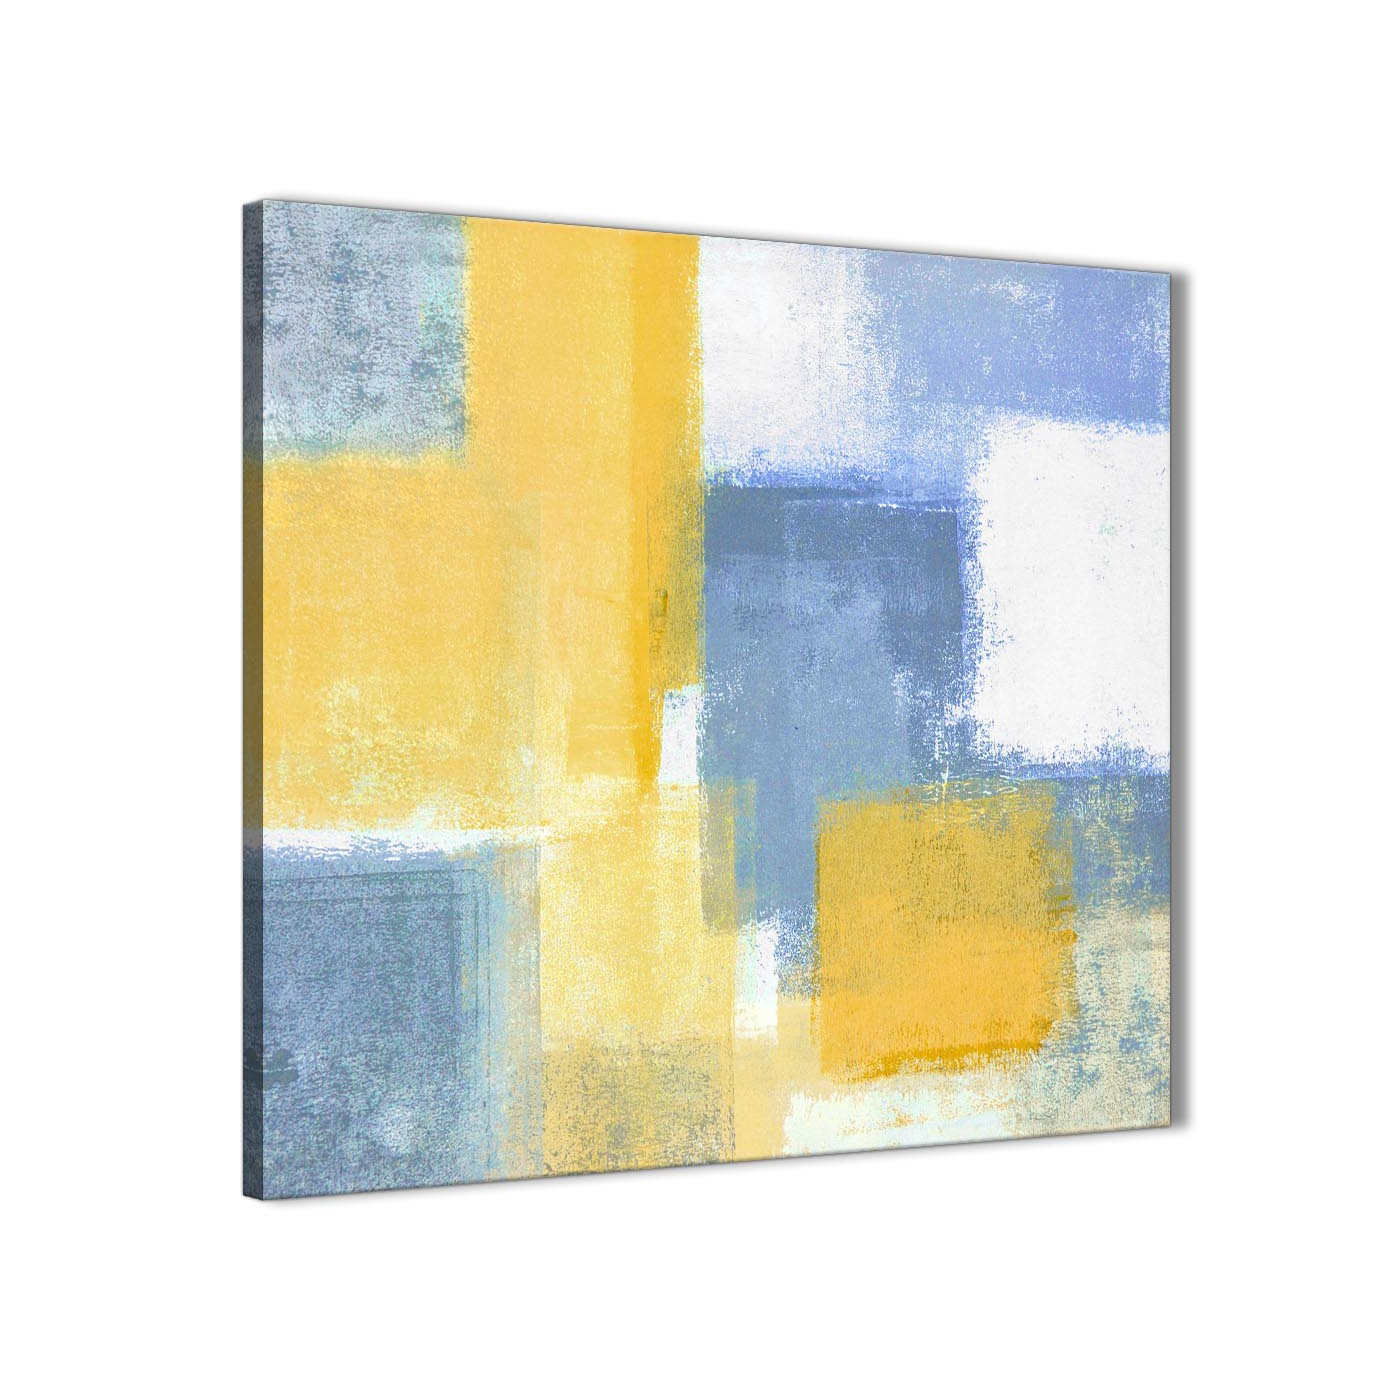 Cheap Mustard Yellow Blue Kitchen Canvas Pictures Accessories   Abstract  1s371s   49cm Square Print Display Gallery Item 1 ...